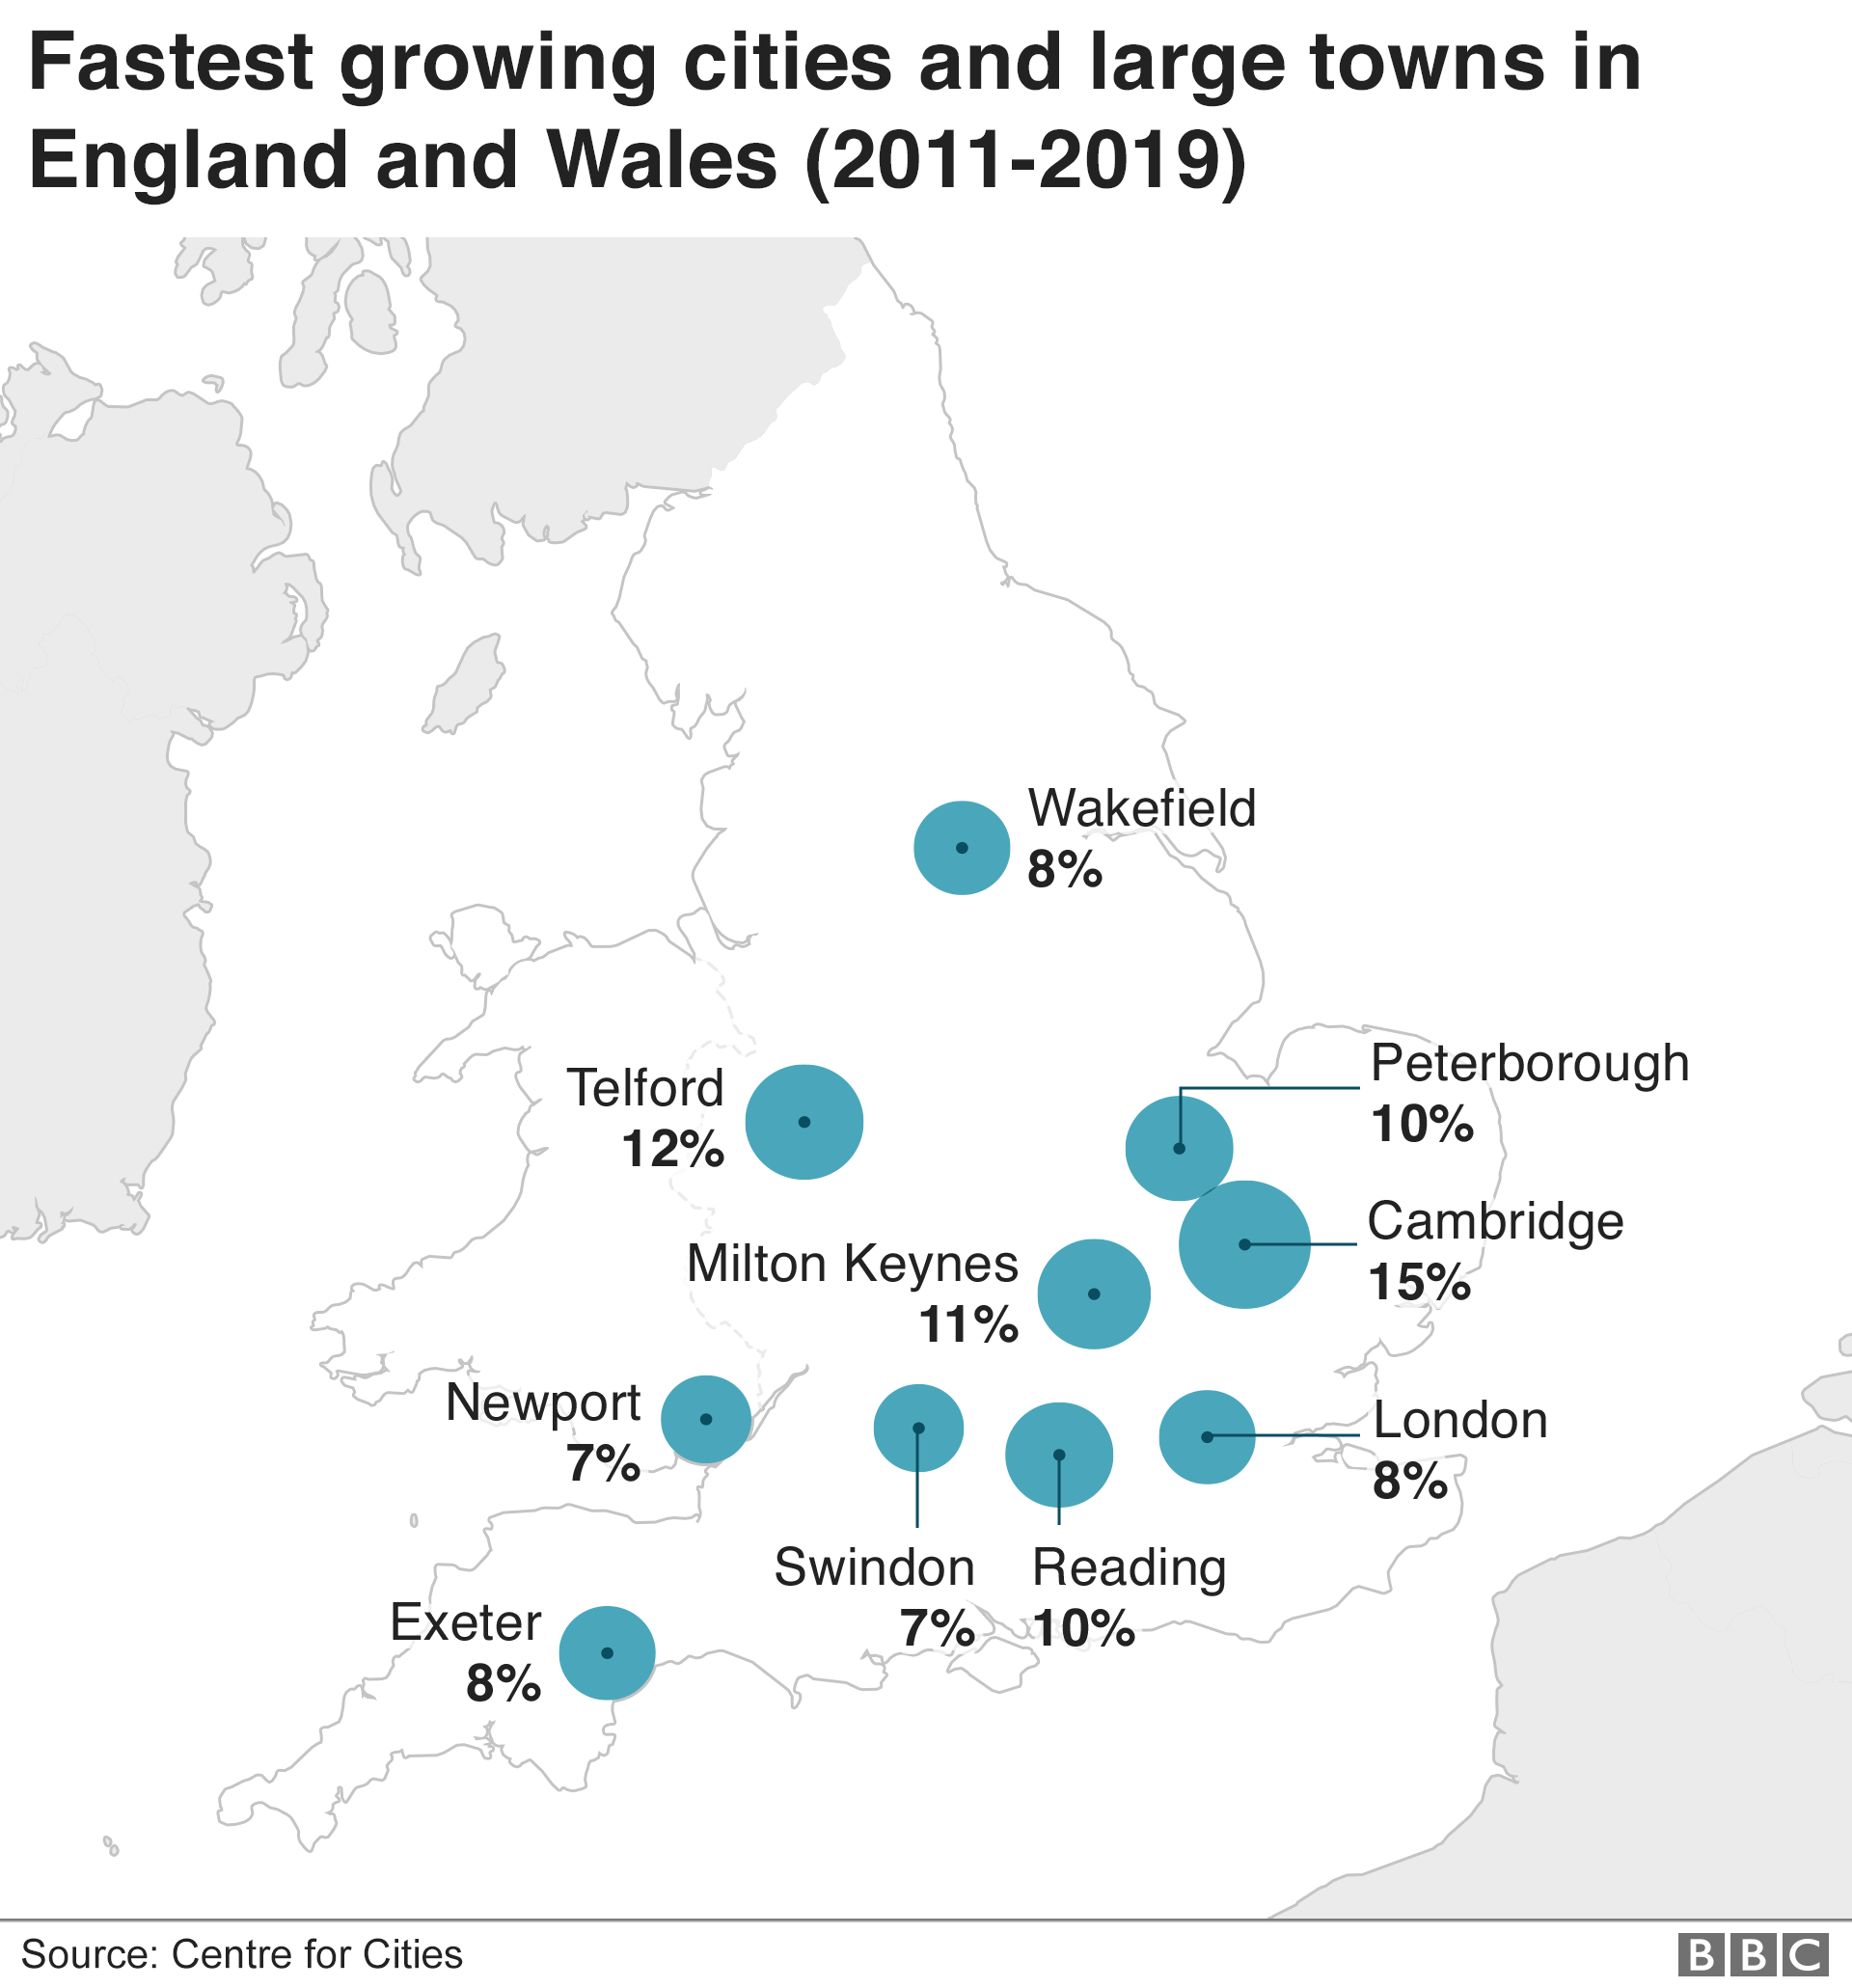 Map showing fastest growing cities and town in England and Wales